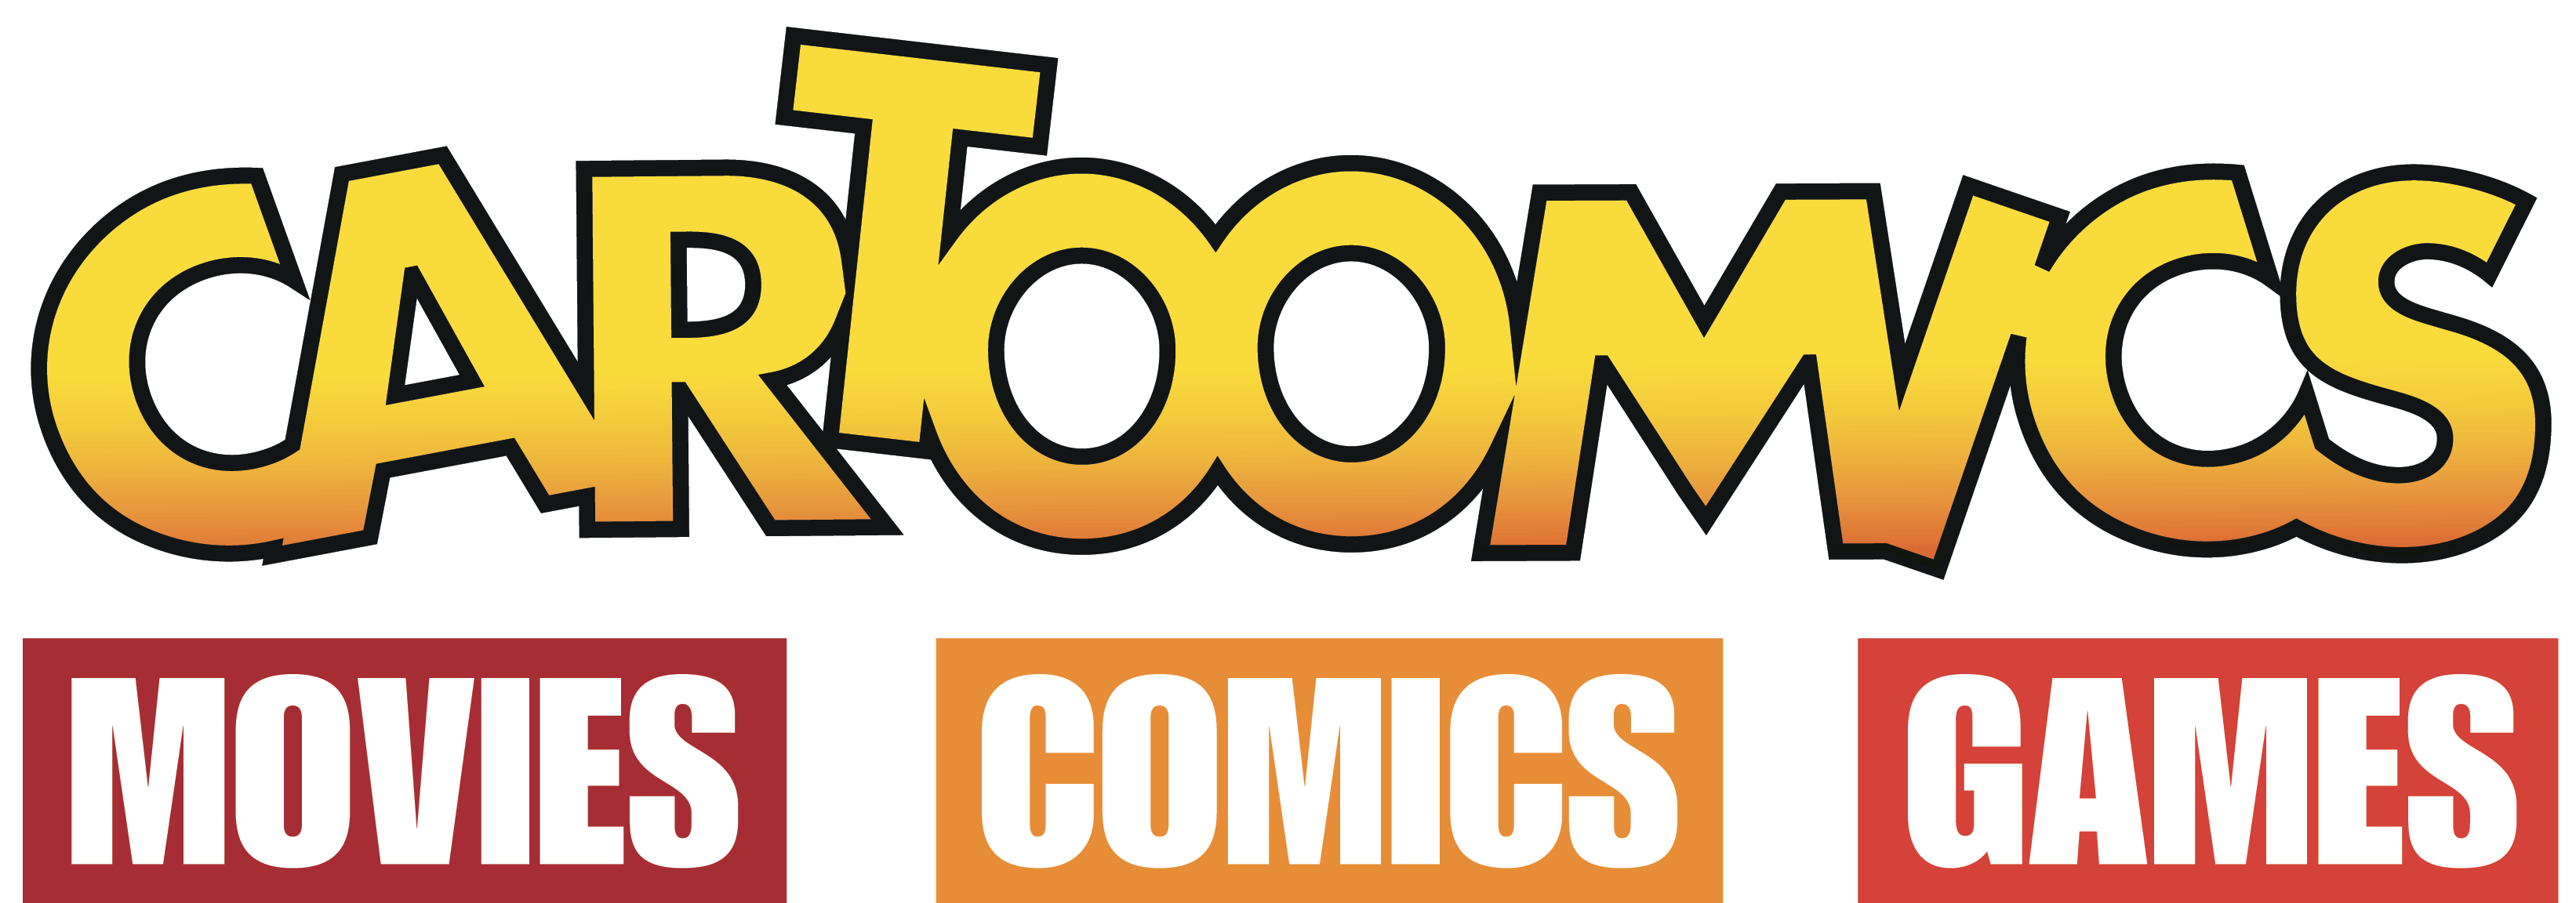 Cartoomics_logo 2018